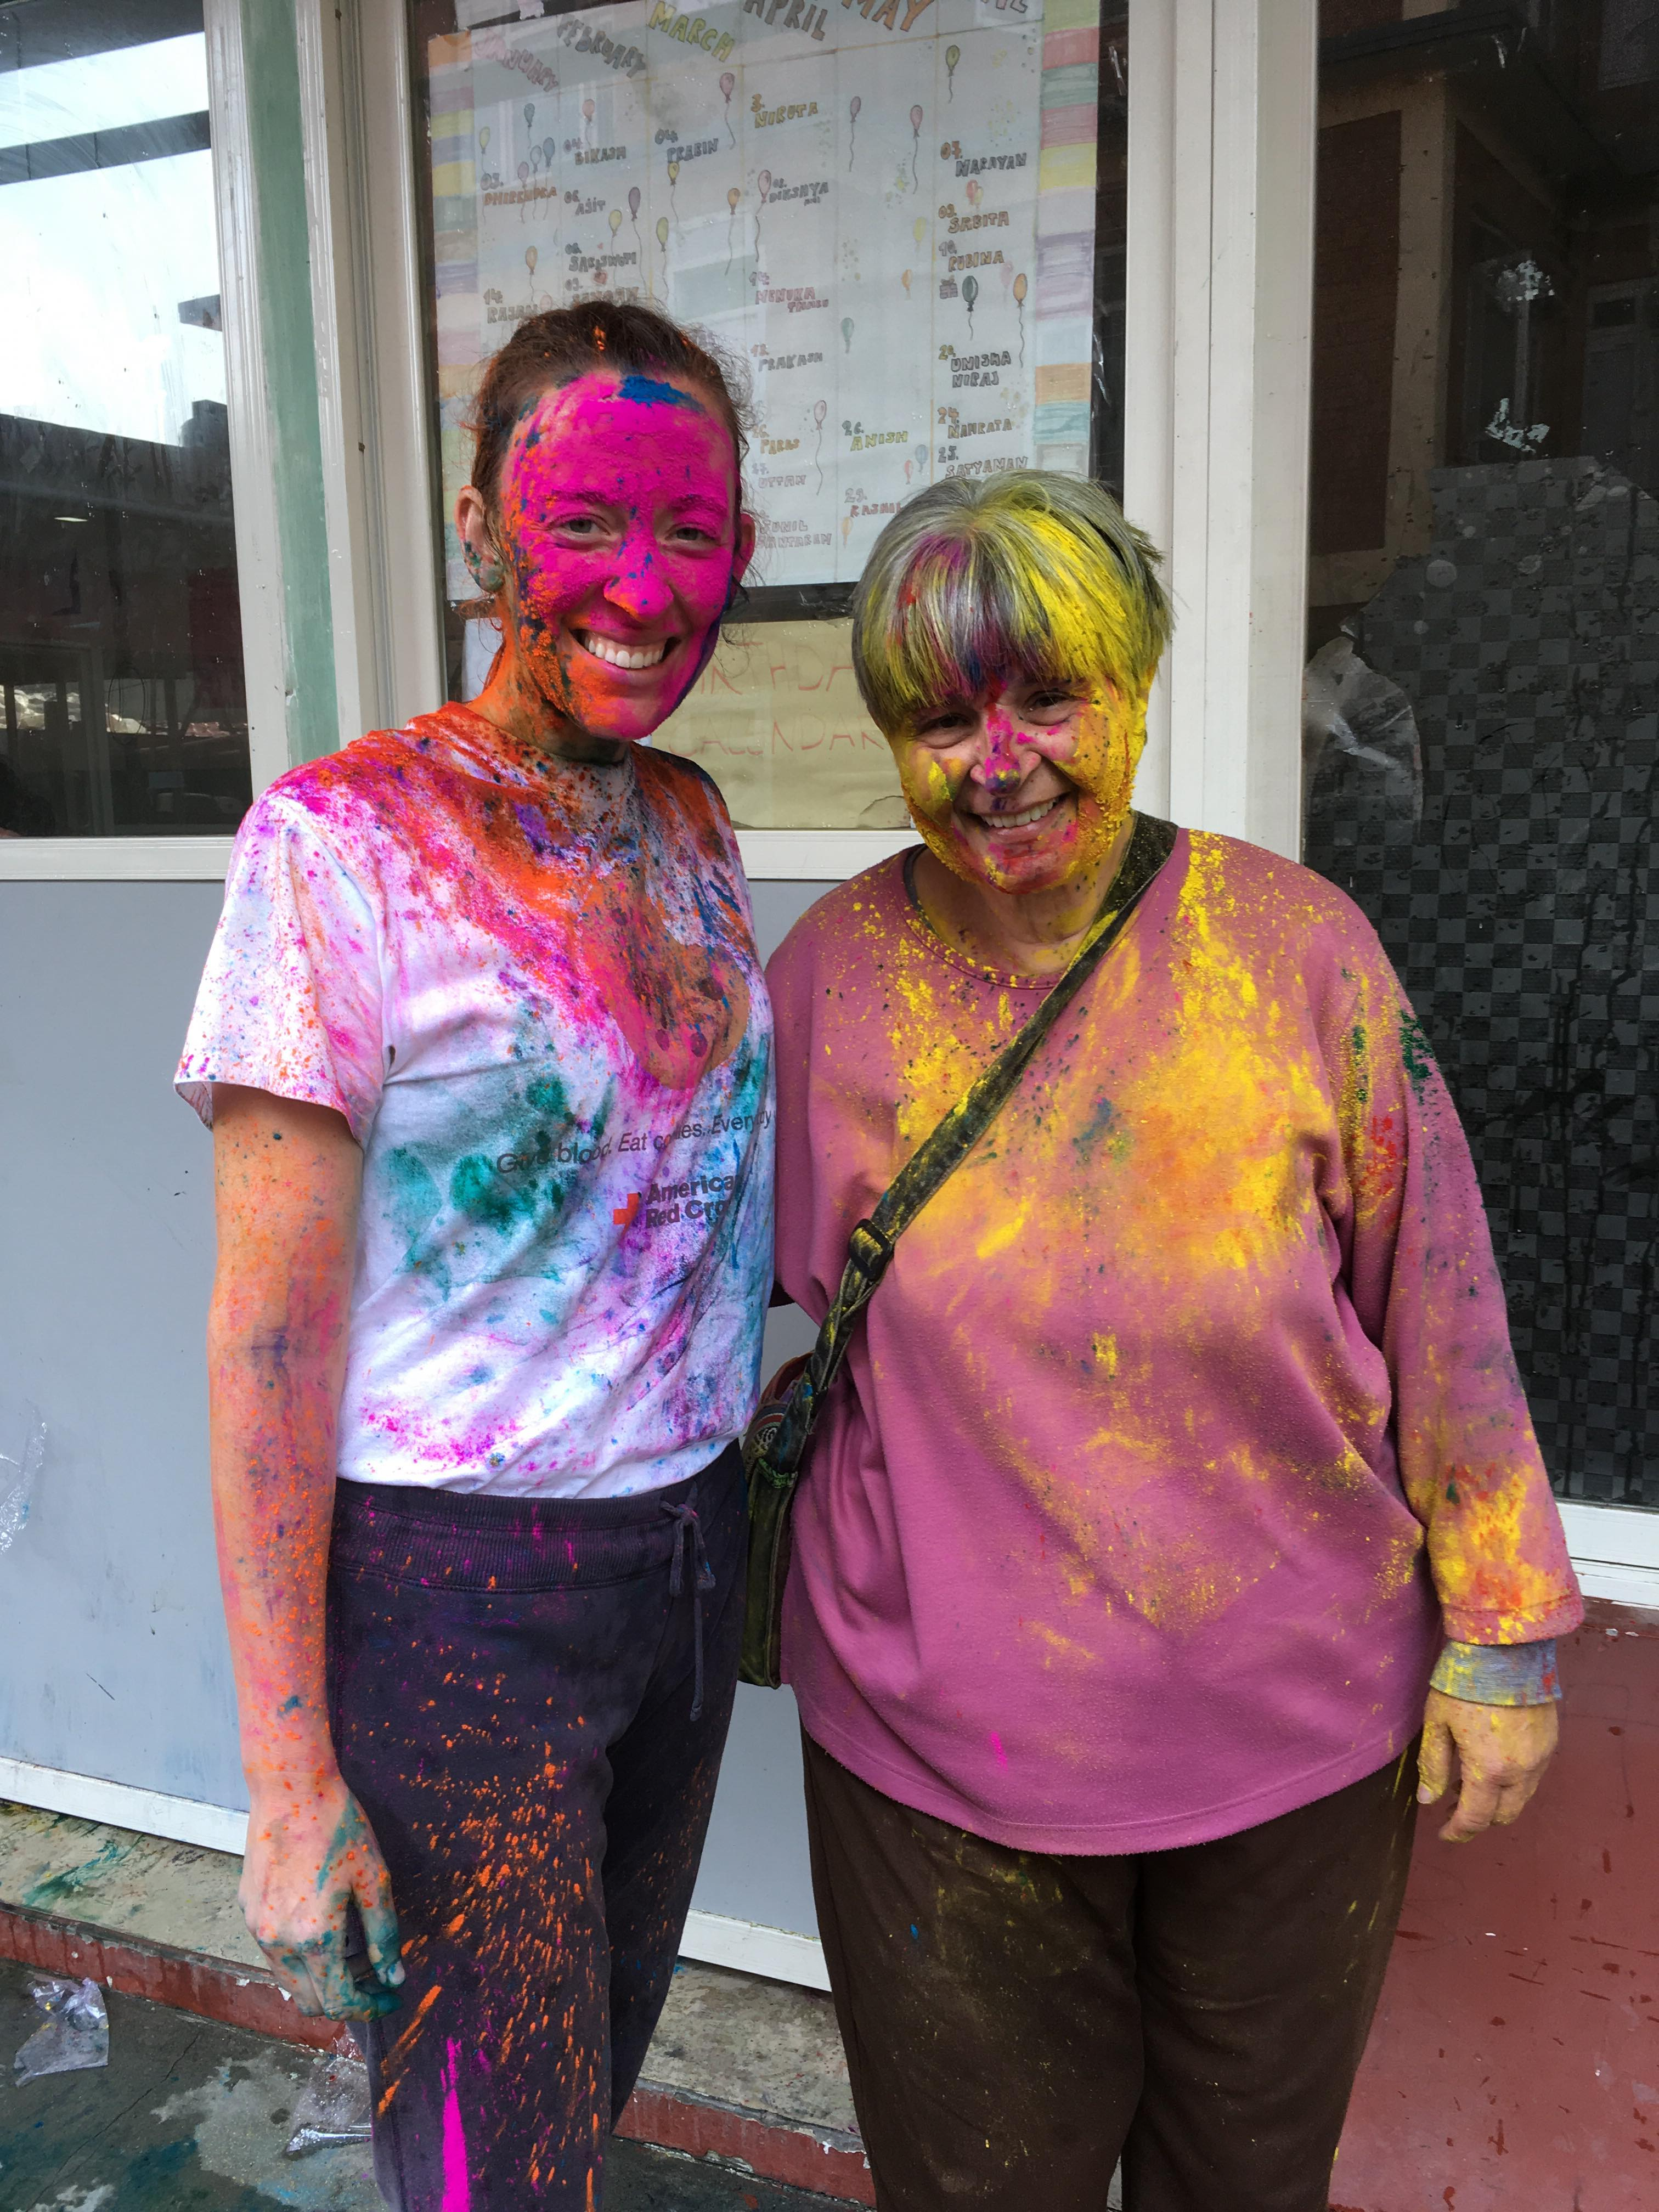 Ellen Dietrich, left, along with Self Help Nepal volunteer Dani Edgar, pose for a photo while covered in color dust following a Nepalese celebration at Home of Hope in Kathmandu, Nepal.